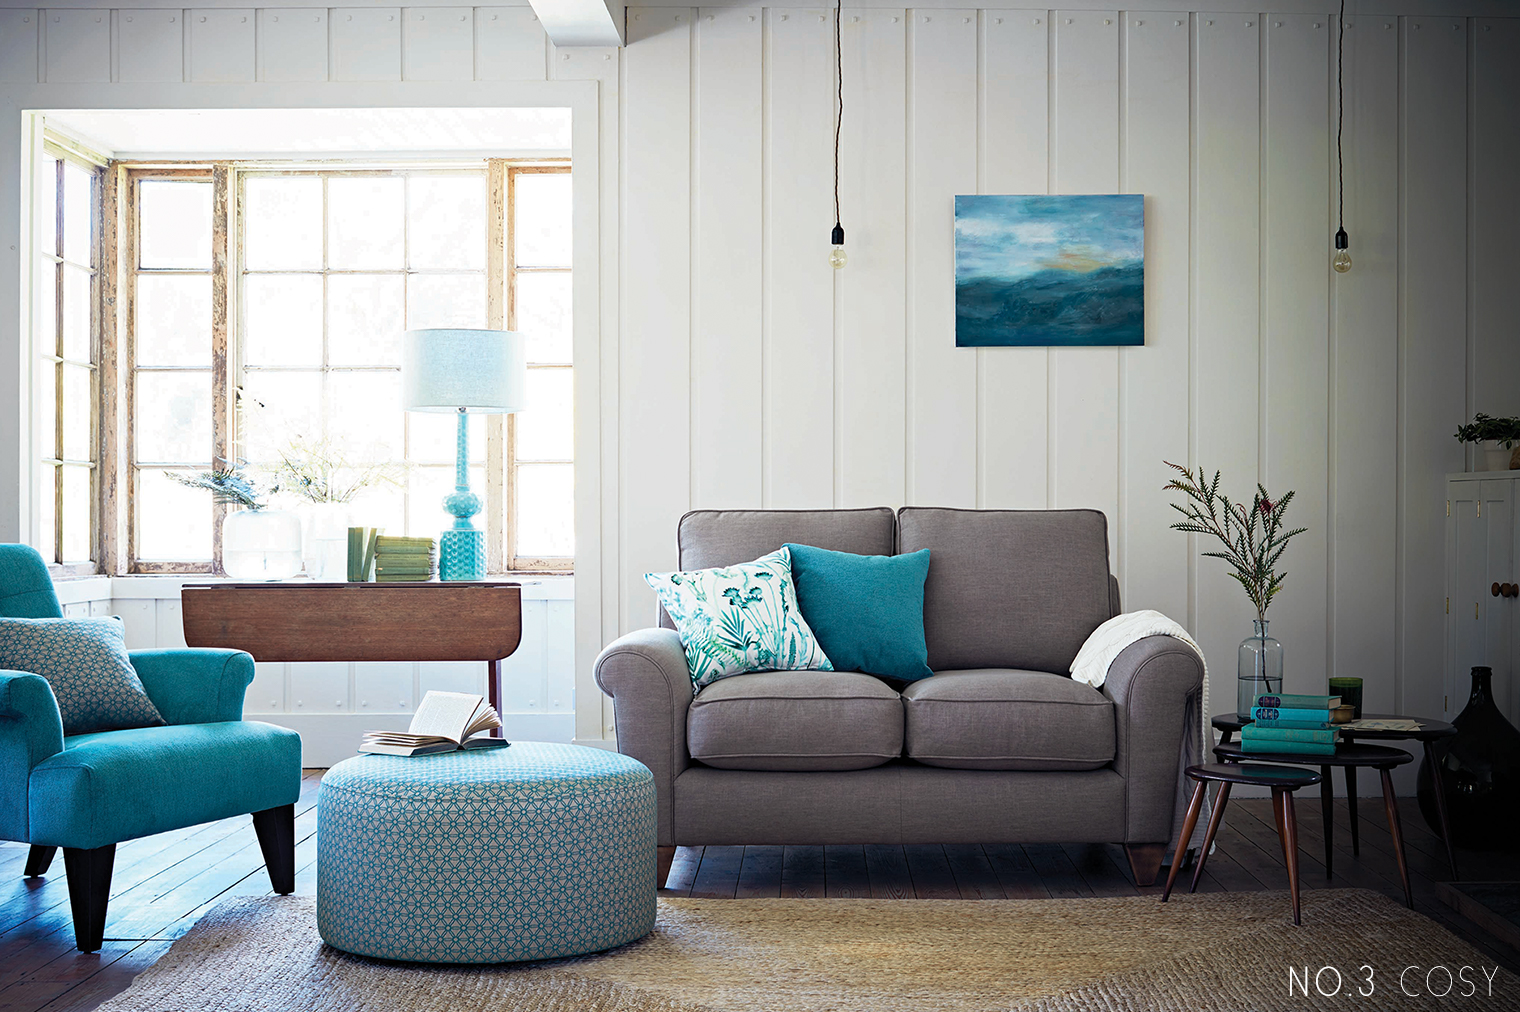 How To Choose A Couch how to choose a sofa for your style: the lounge co. - bright